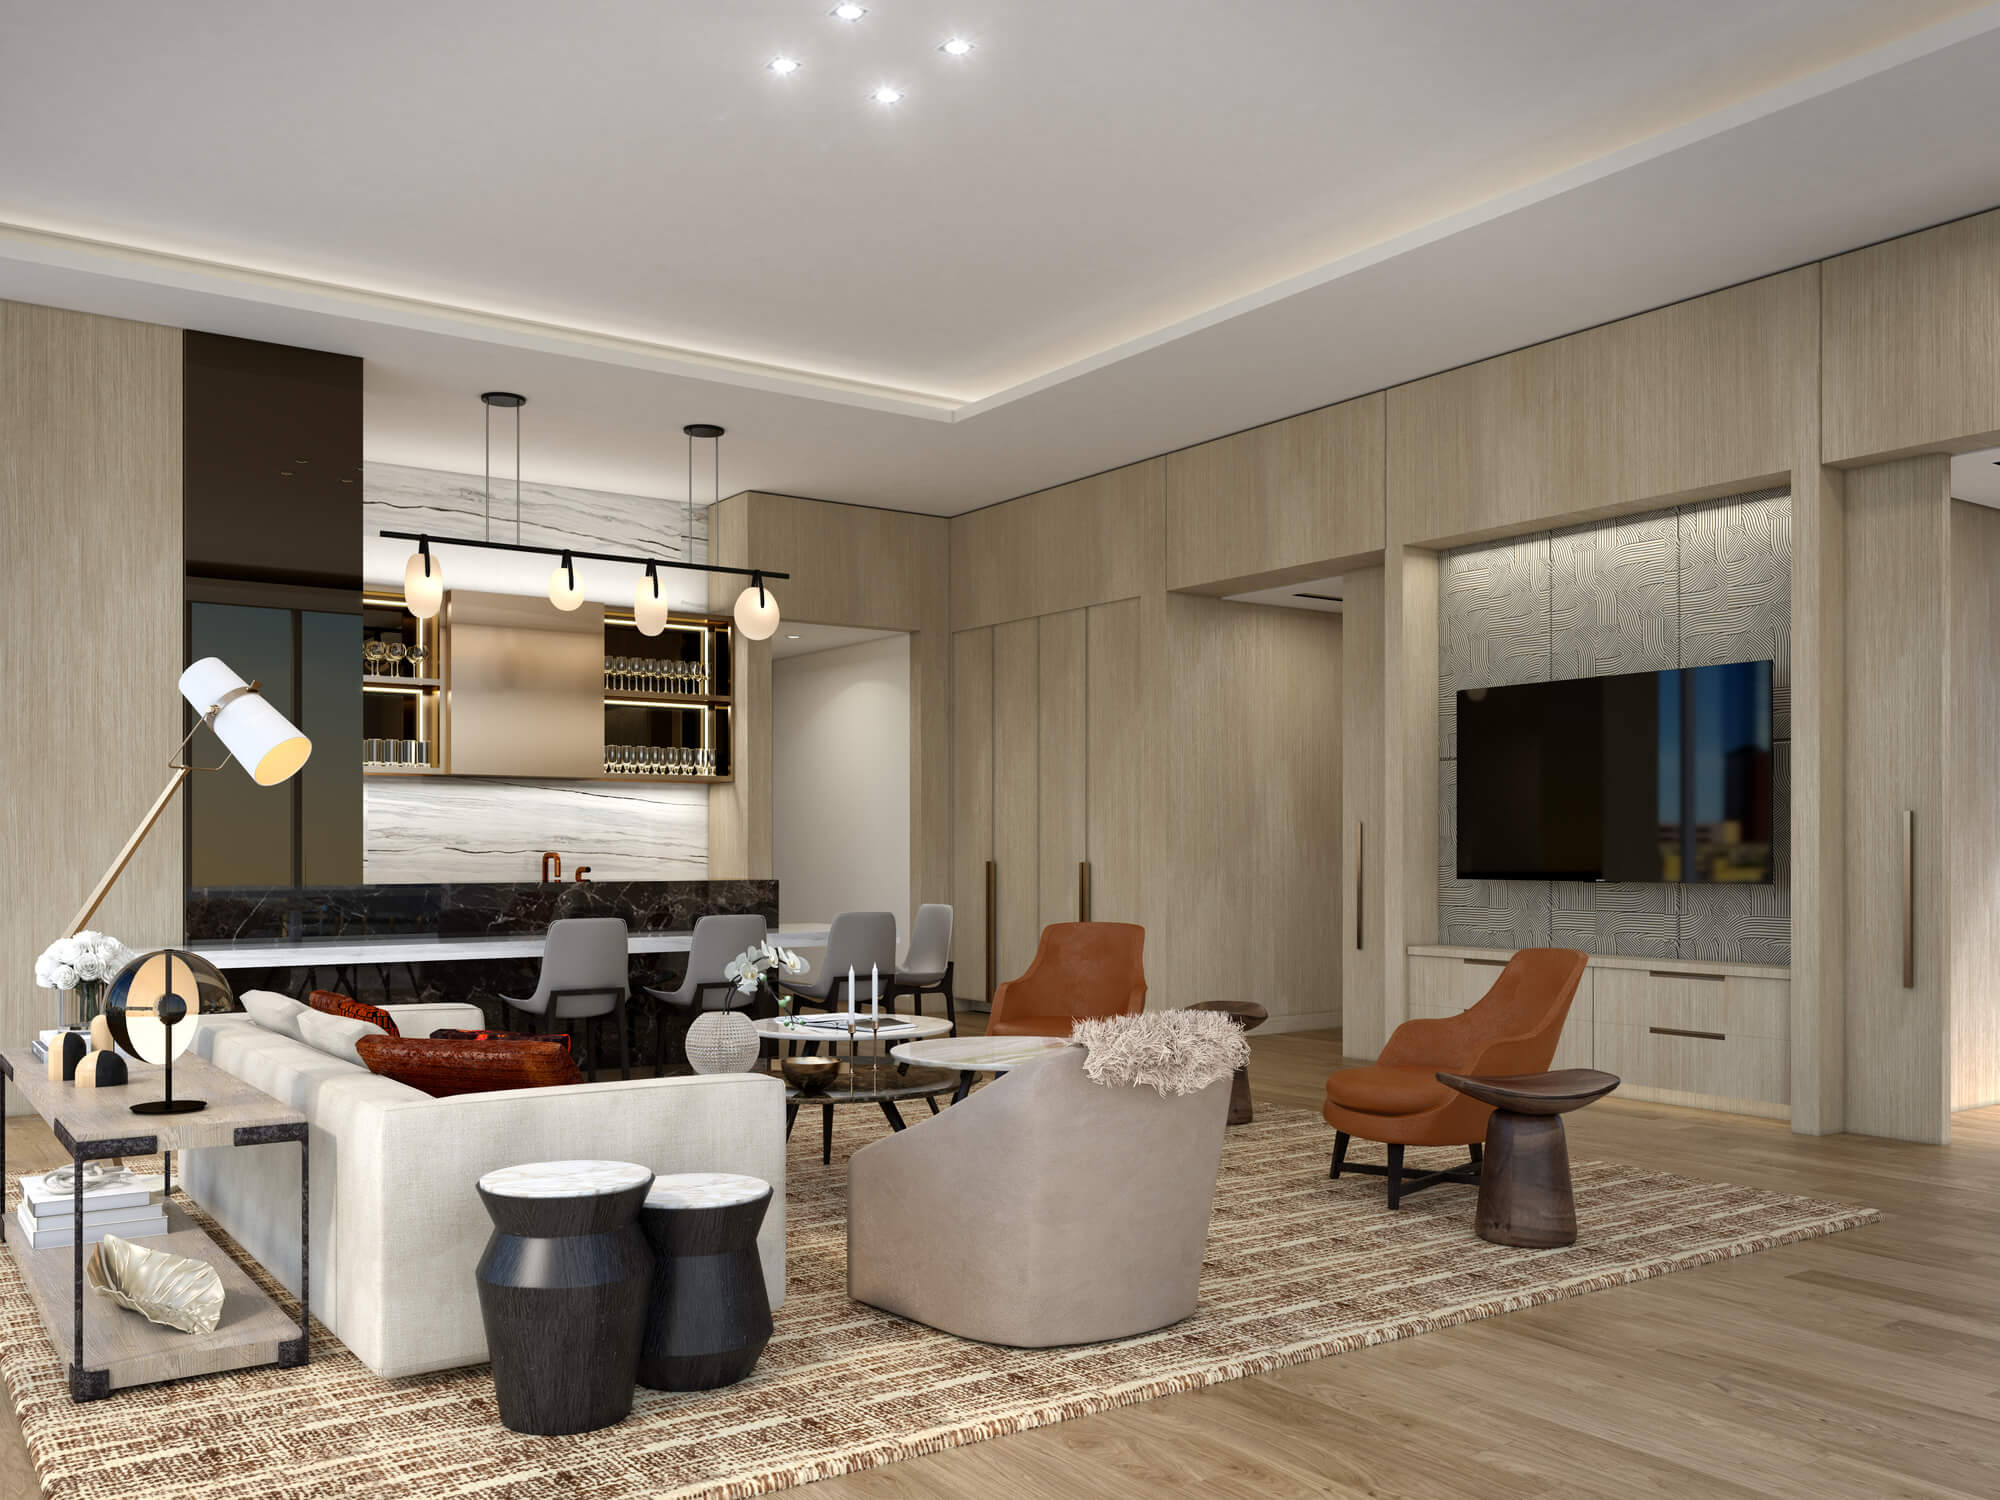 THEA luxury kitchen with seating area